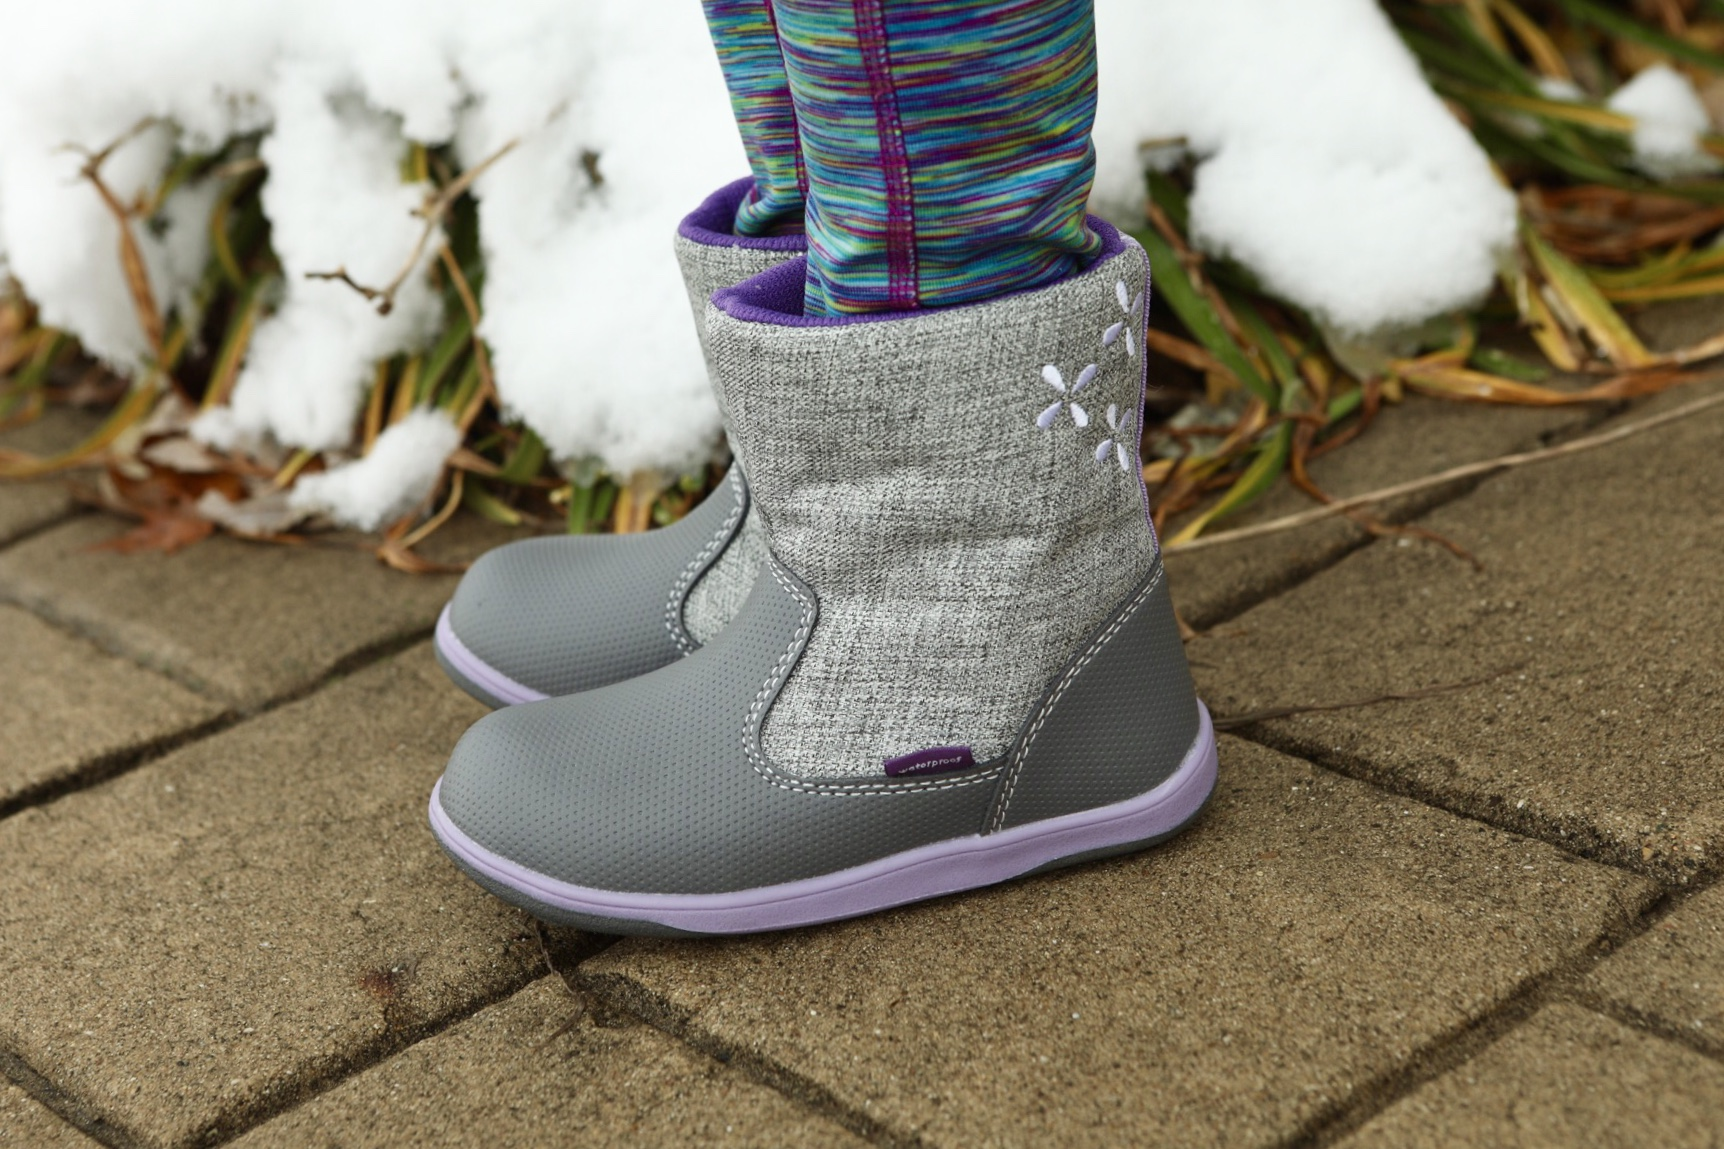 great boots for kids from See Kai Run, gift ideas for kids, family travel, family trip